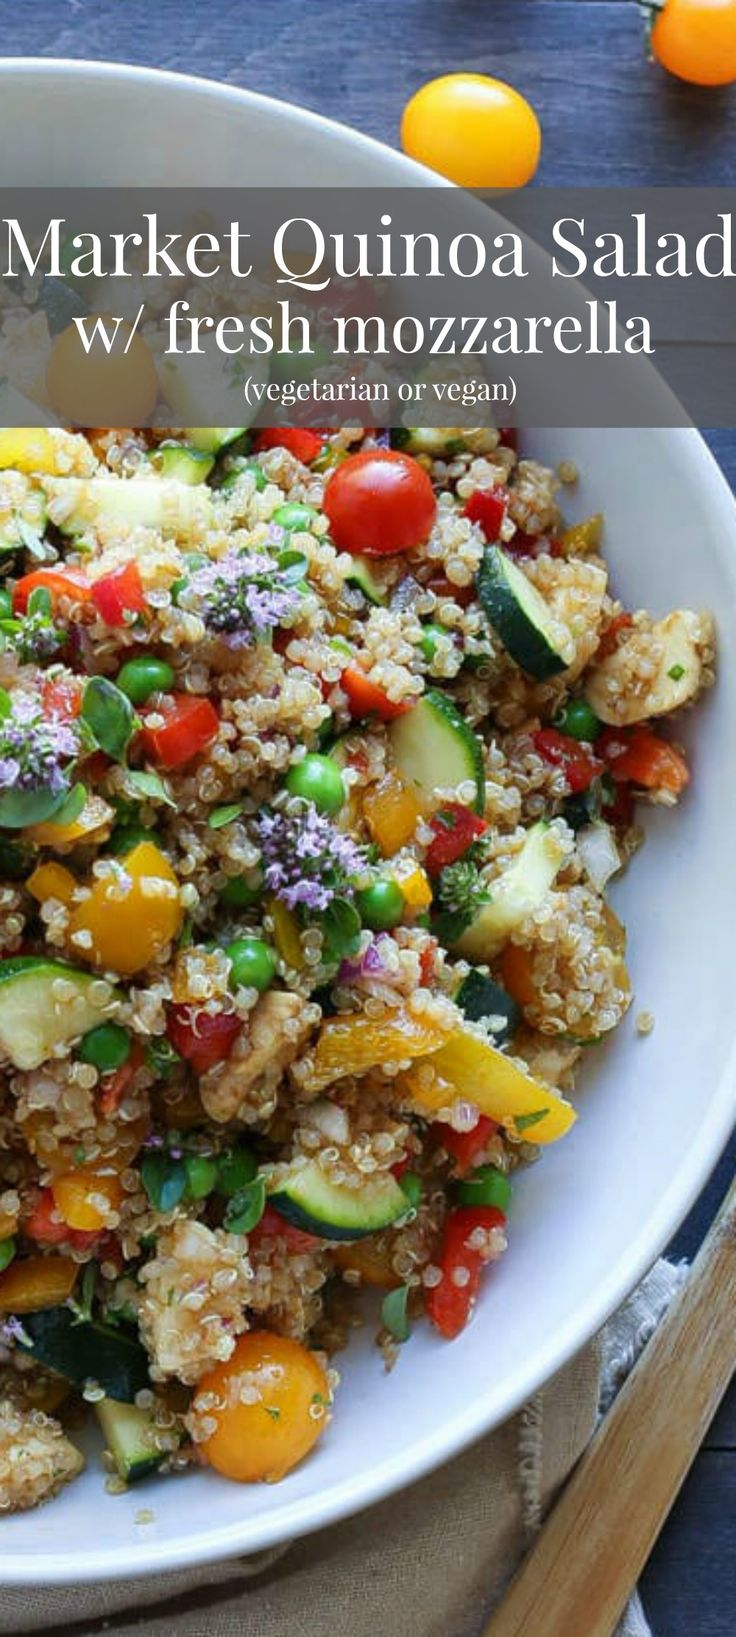 A delicious, healthy and texture rich salad salad made with the freshest farmers market finds! Market Quinoa Salad with Fresh Mozzarella - vegetarian or vegan + gf